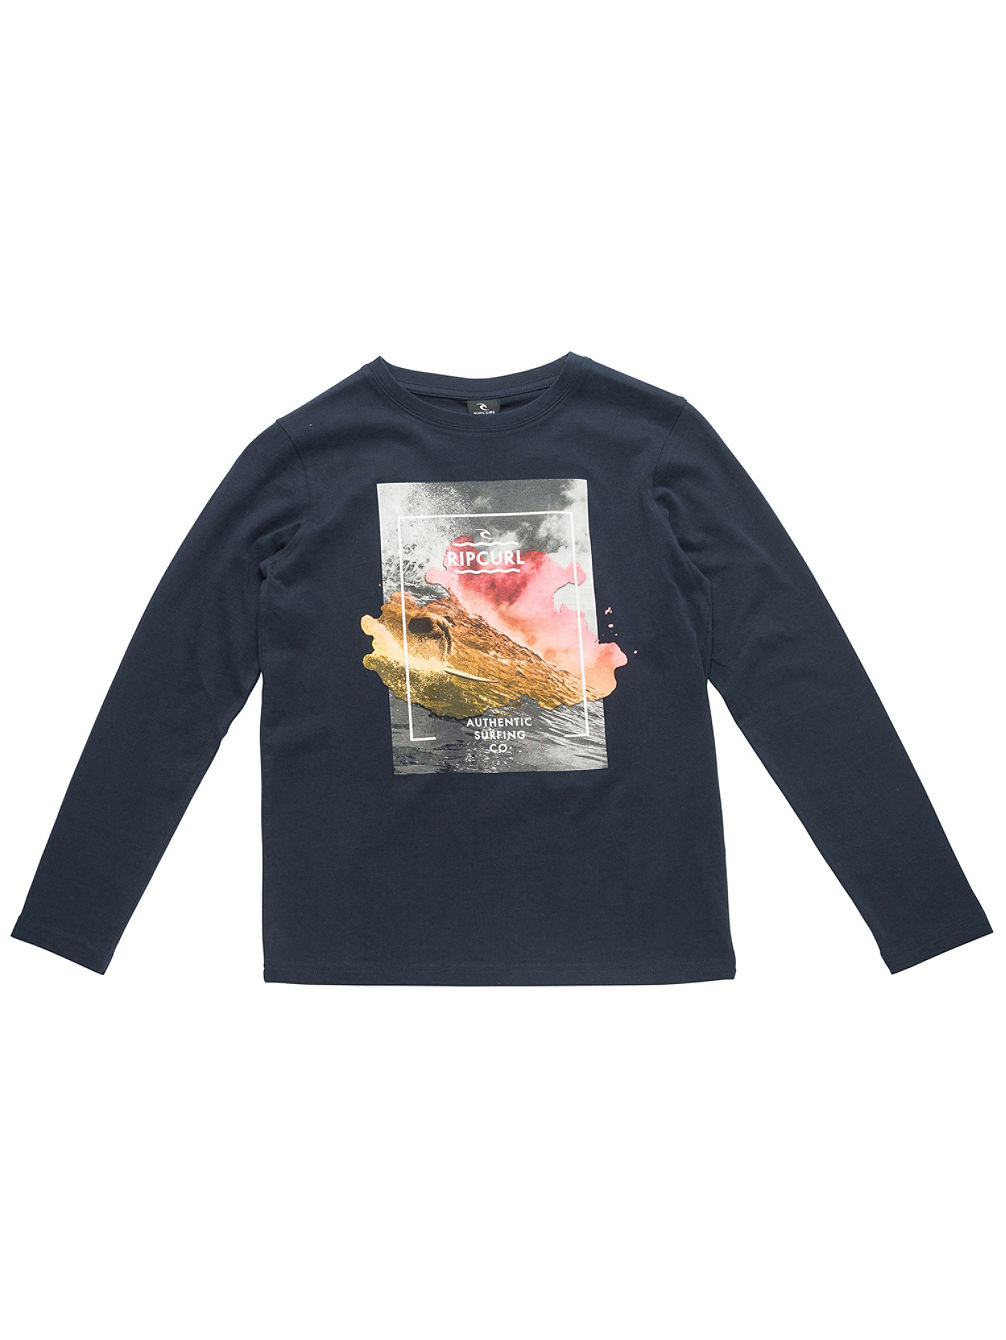 Satured Action Print T-Shirt LS Boys